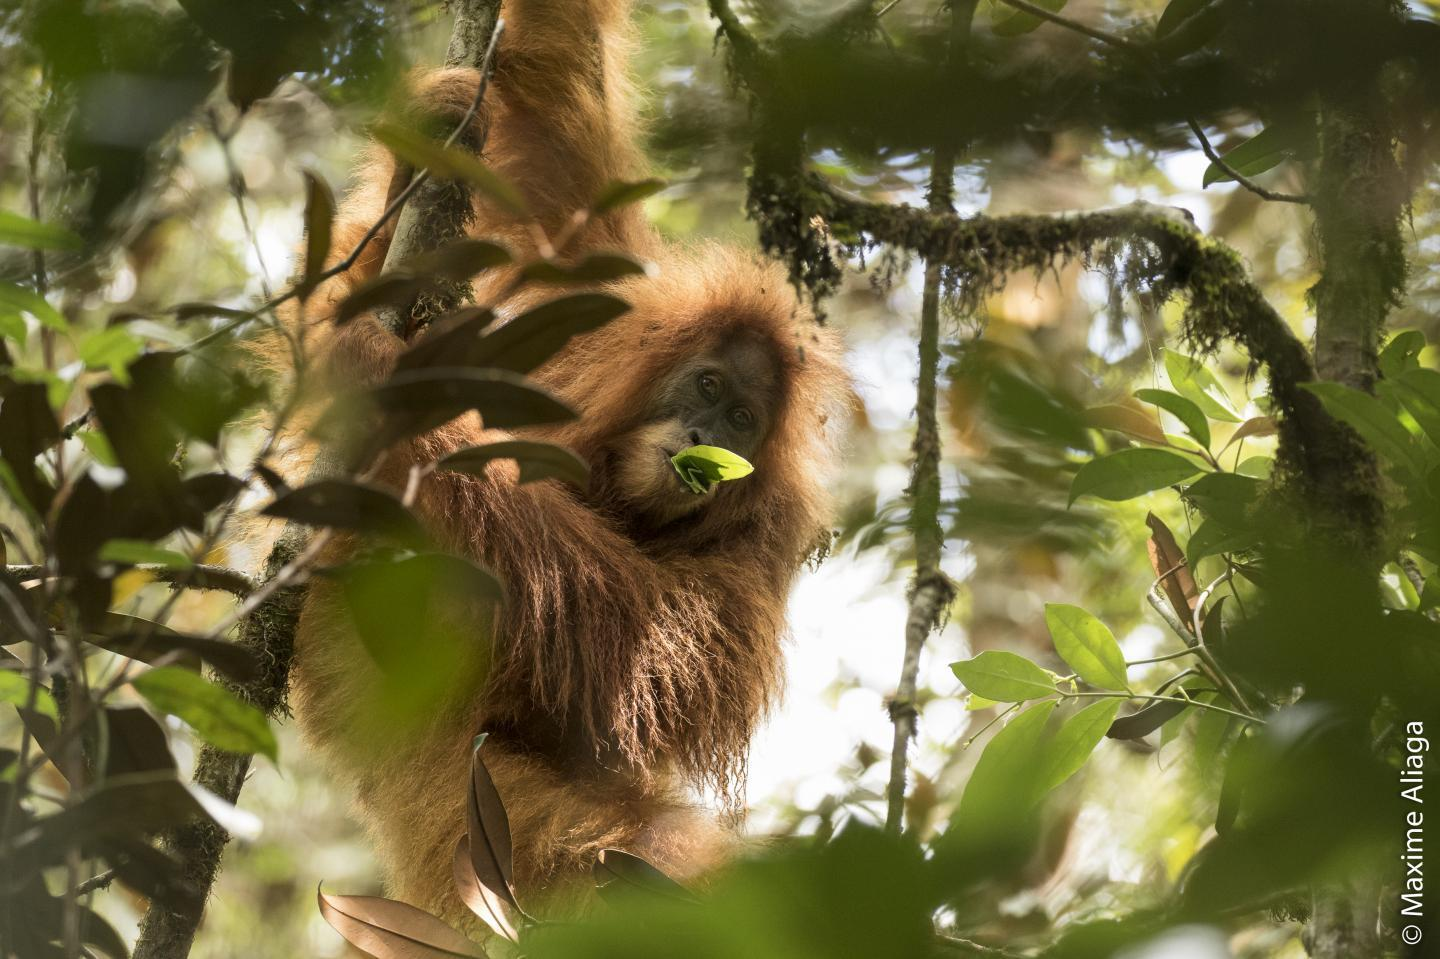 Experts estimate that there are fewer than 800 Tapanuli orangutans left in the world, making their prospects for survival unclear.